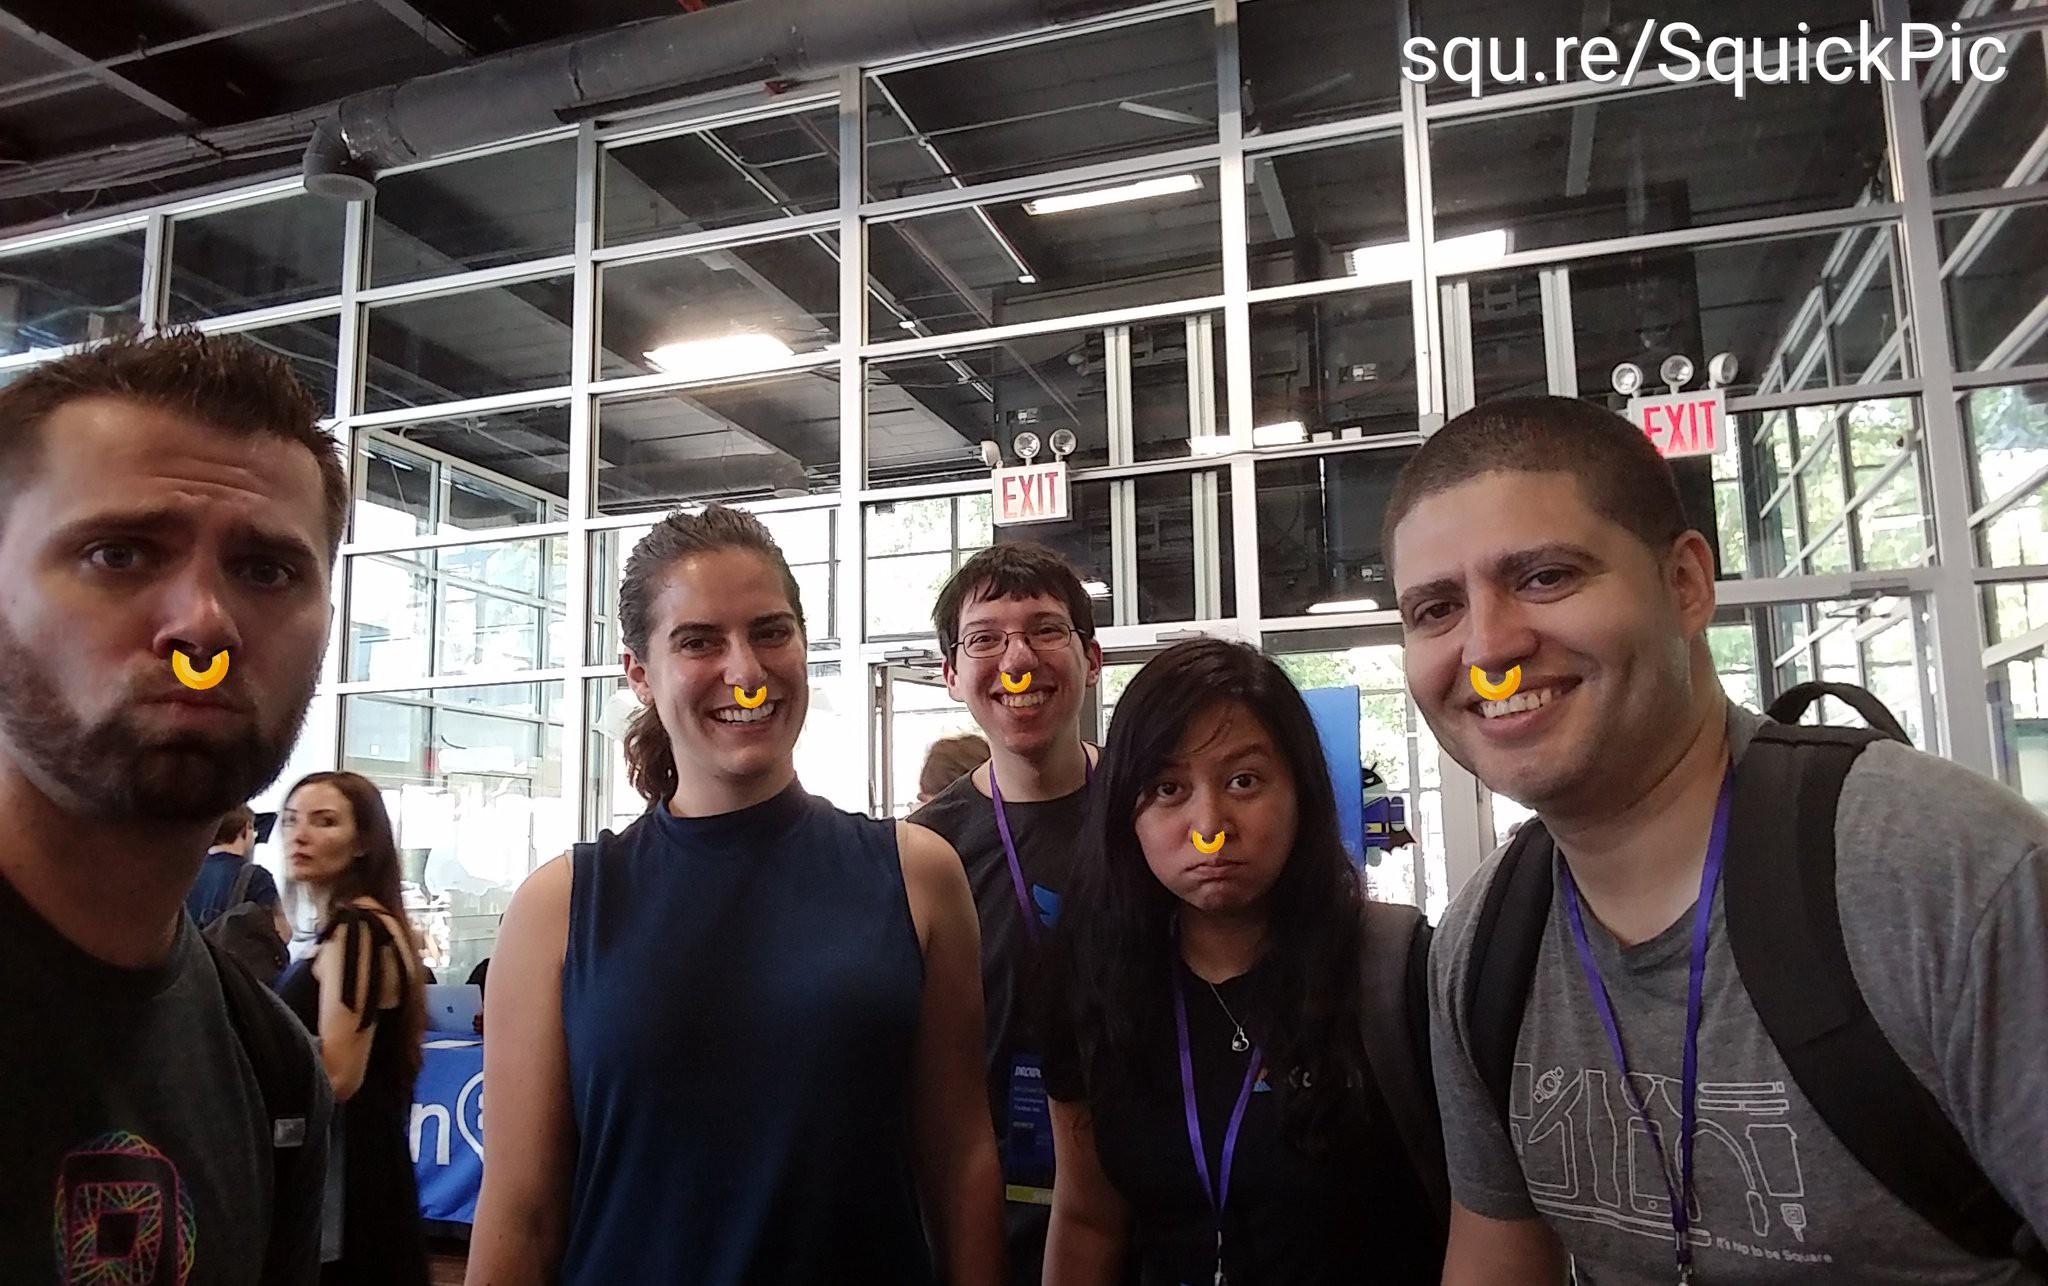 Android engineers Christina, Mike, Zarah and John joined me in sporting an Oreo Nose Ring